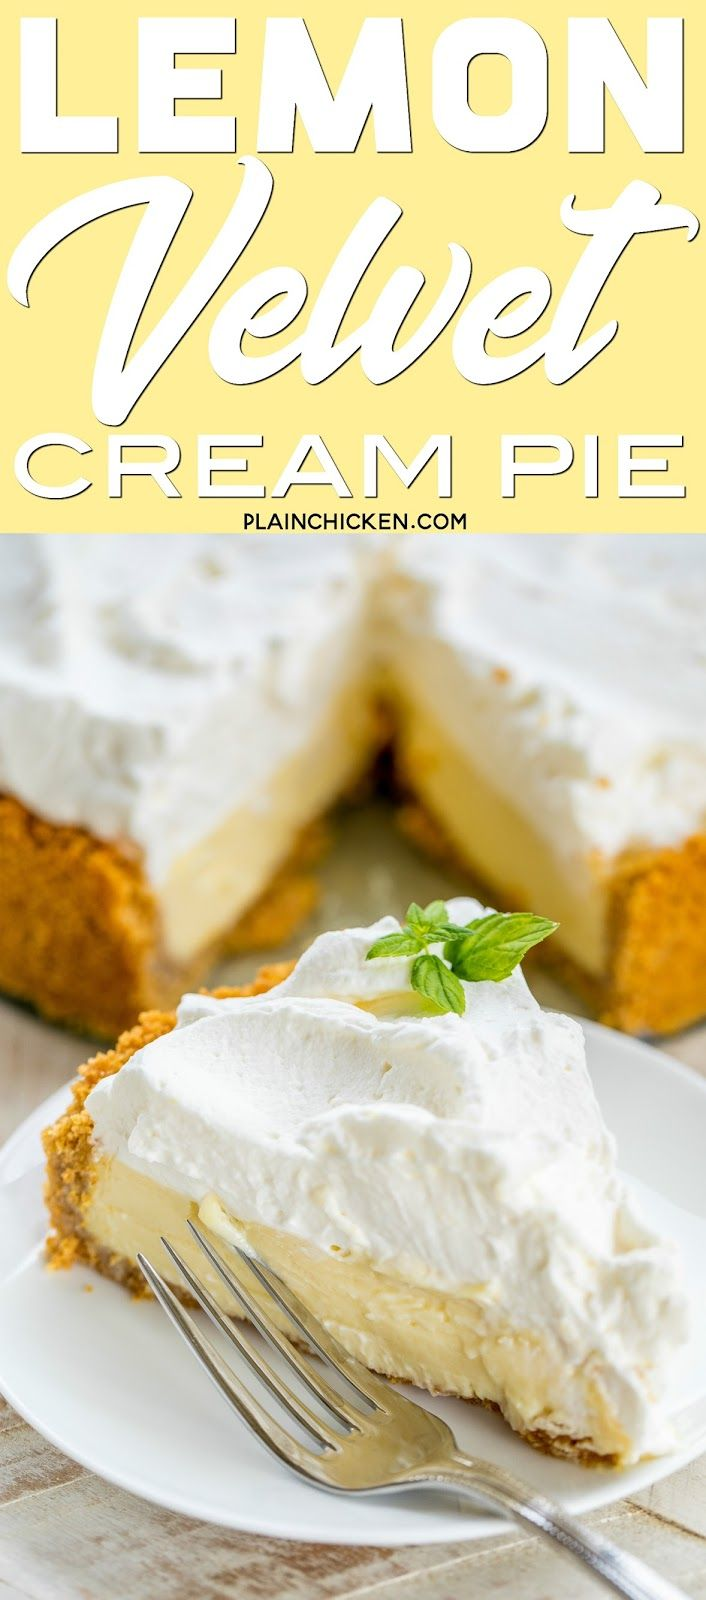 Lemon Velvet Cream Pie Hands Down The Best Lemon Pie Ever Everyone Raves About This Lemon Dessert Recipes Lemon Pie Recipe Condensed Milk Lemon Pie Recipe